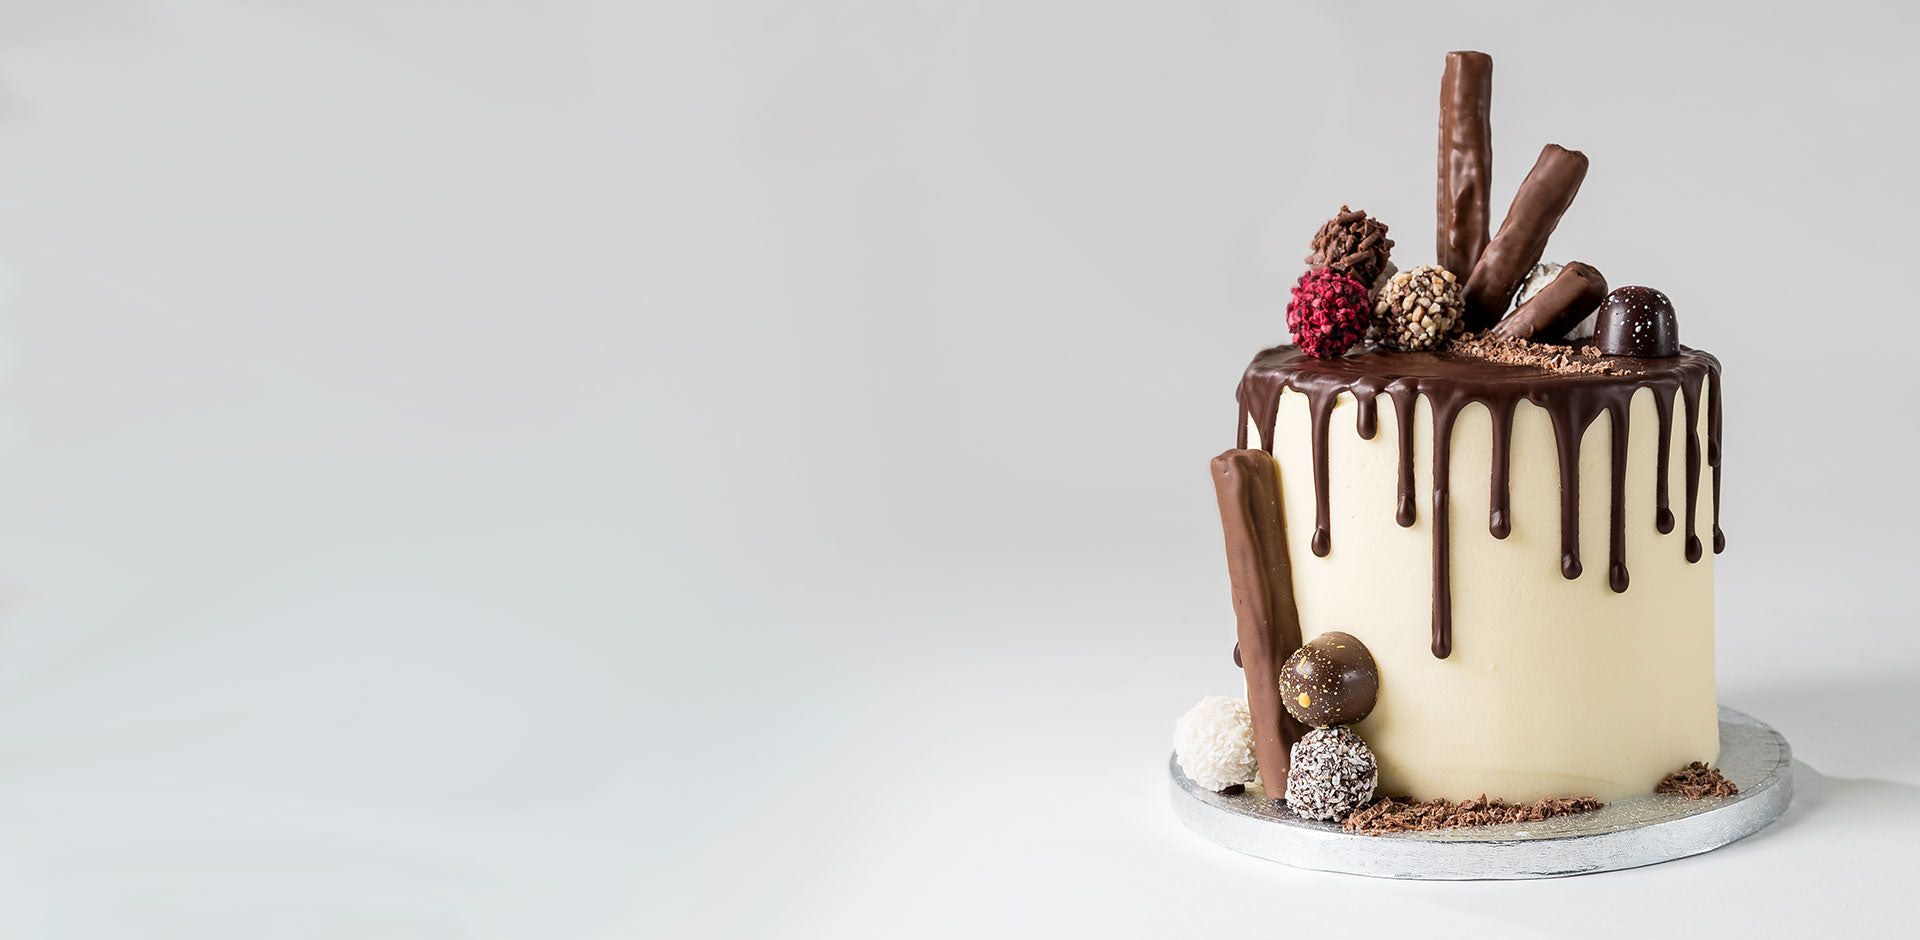 Photograph of a vanilla flavour cake with a chocolate ganache drip effect from ChocoCake positioned to the right